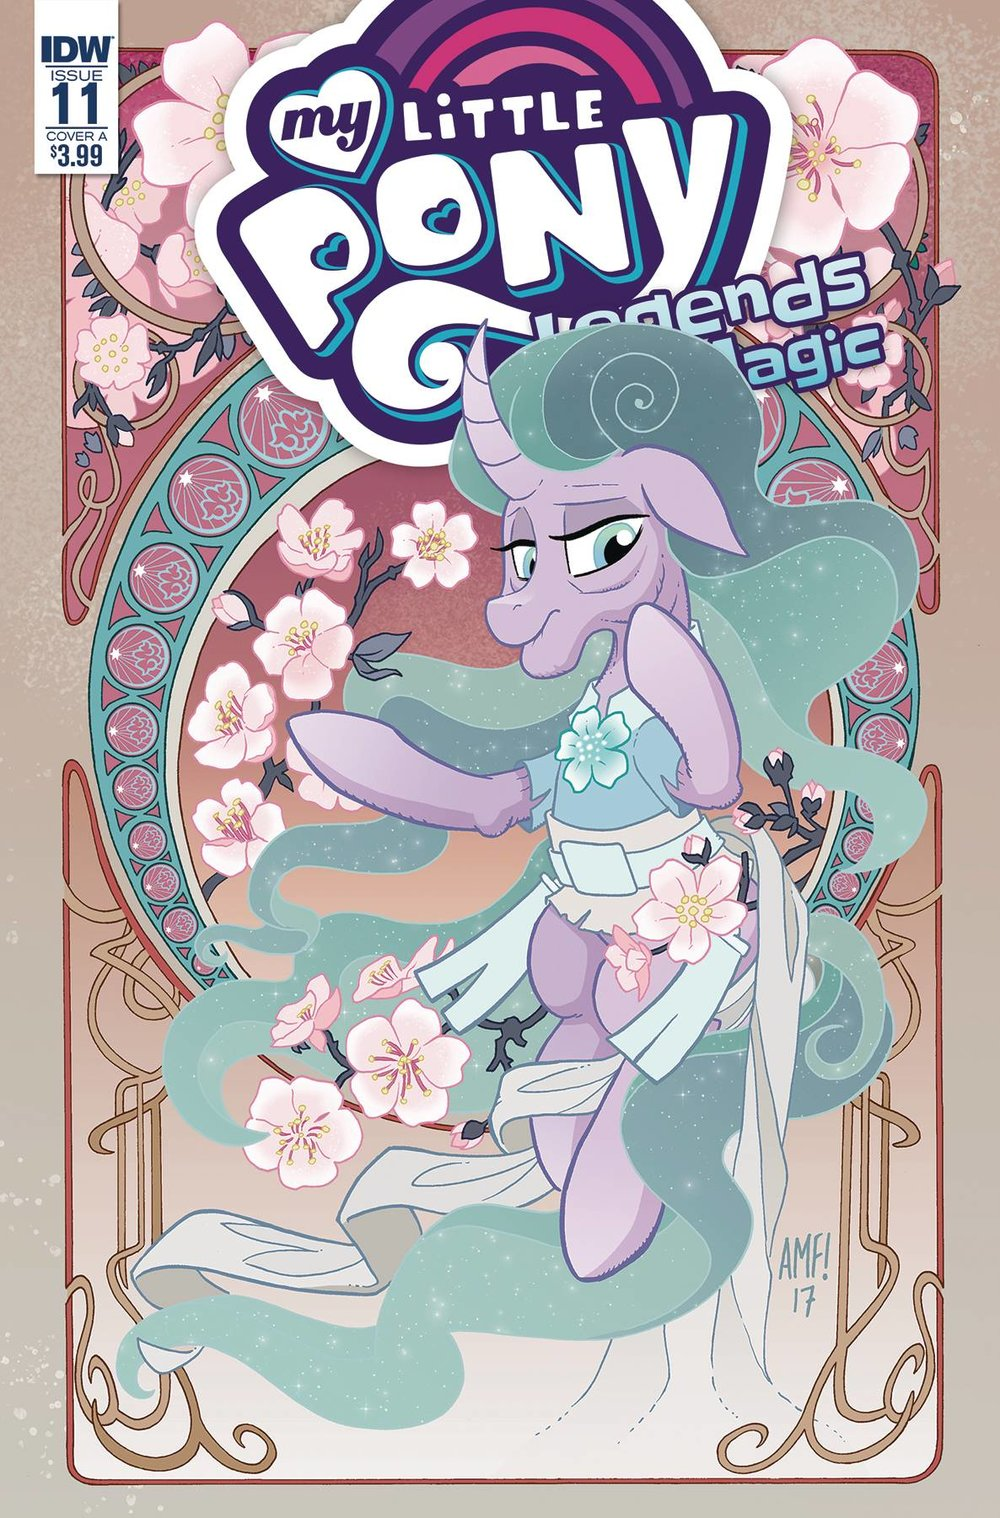 MY LITTLE PONY LEGENDS OF MAGIC 11 CVR A FLEECS.jpg